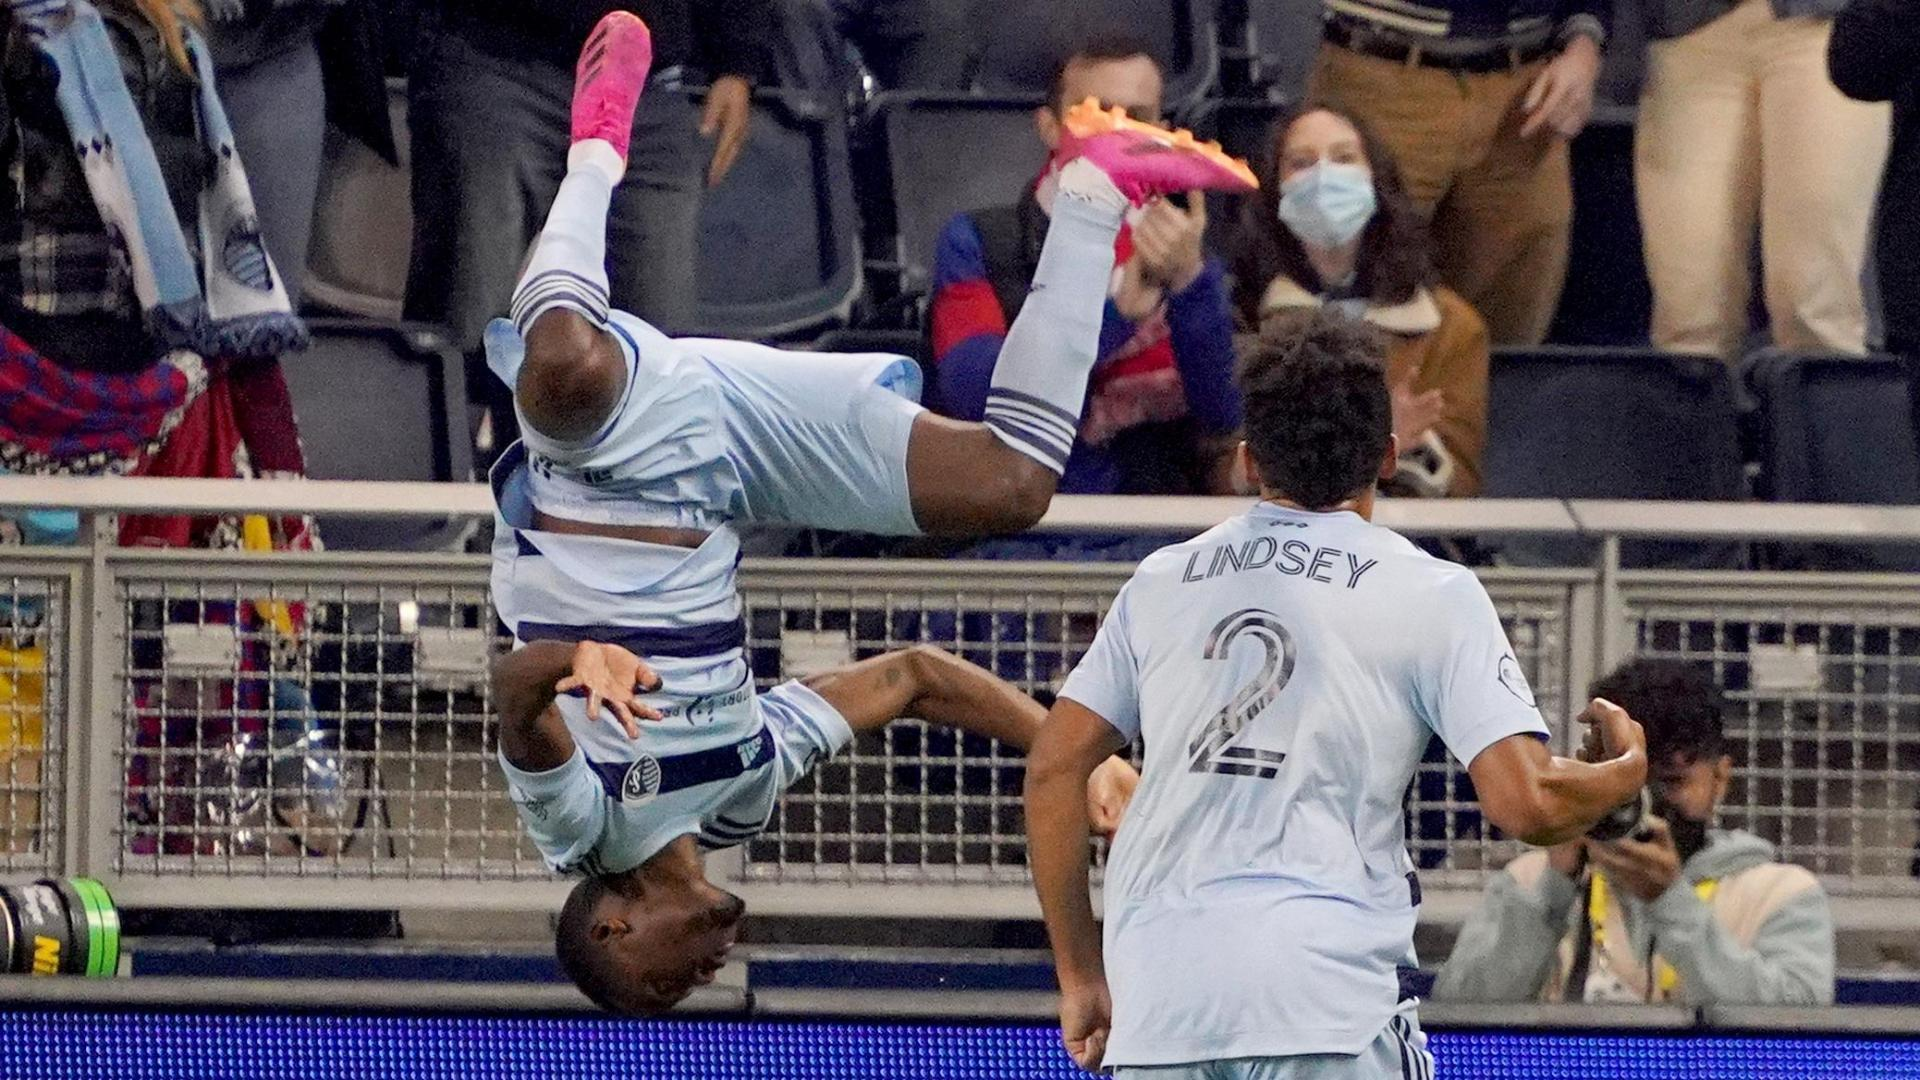 Sporting Kansas City completes comeback and beats Austin FC